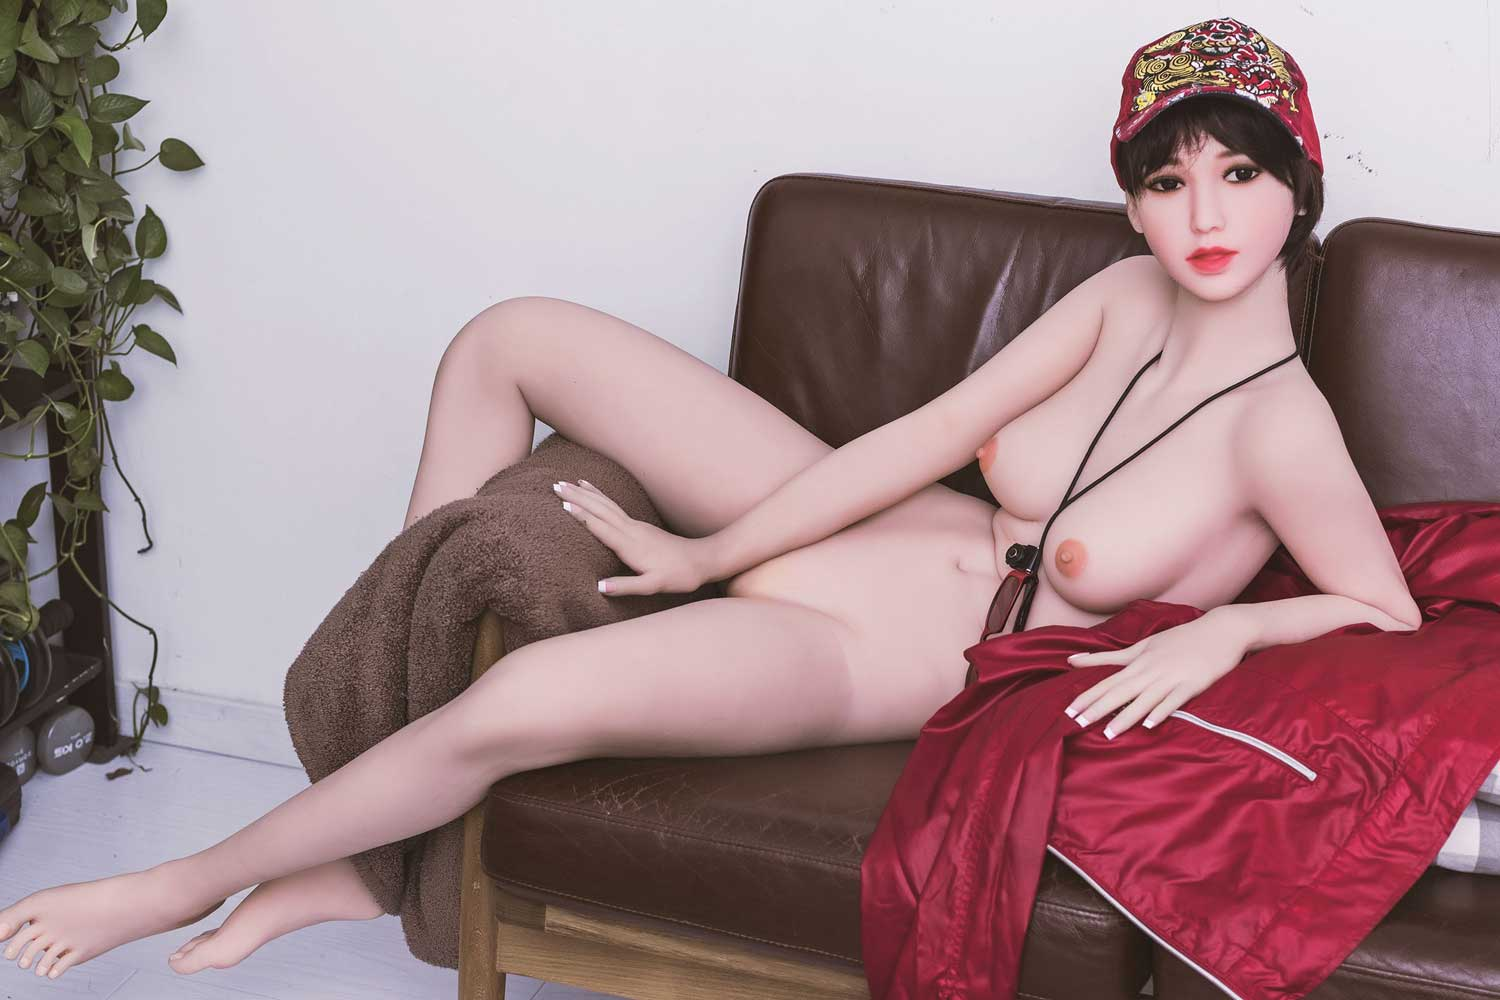 Sex doll sitting naked on the sofa